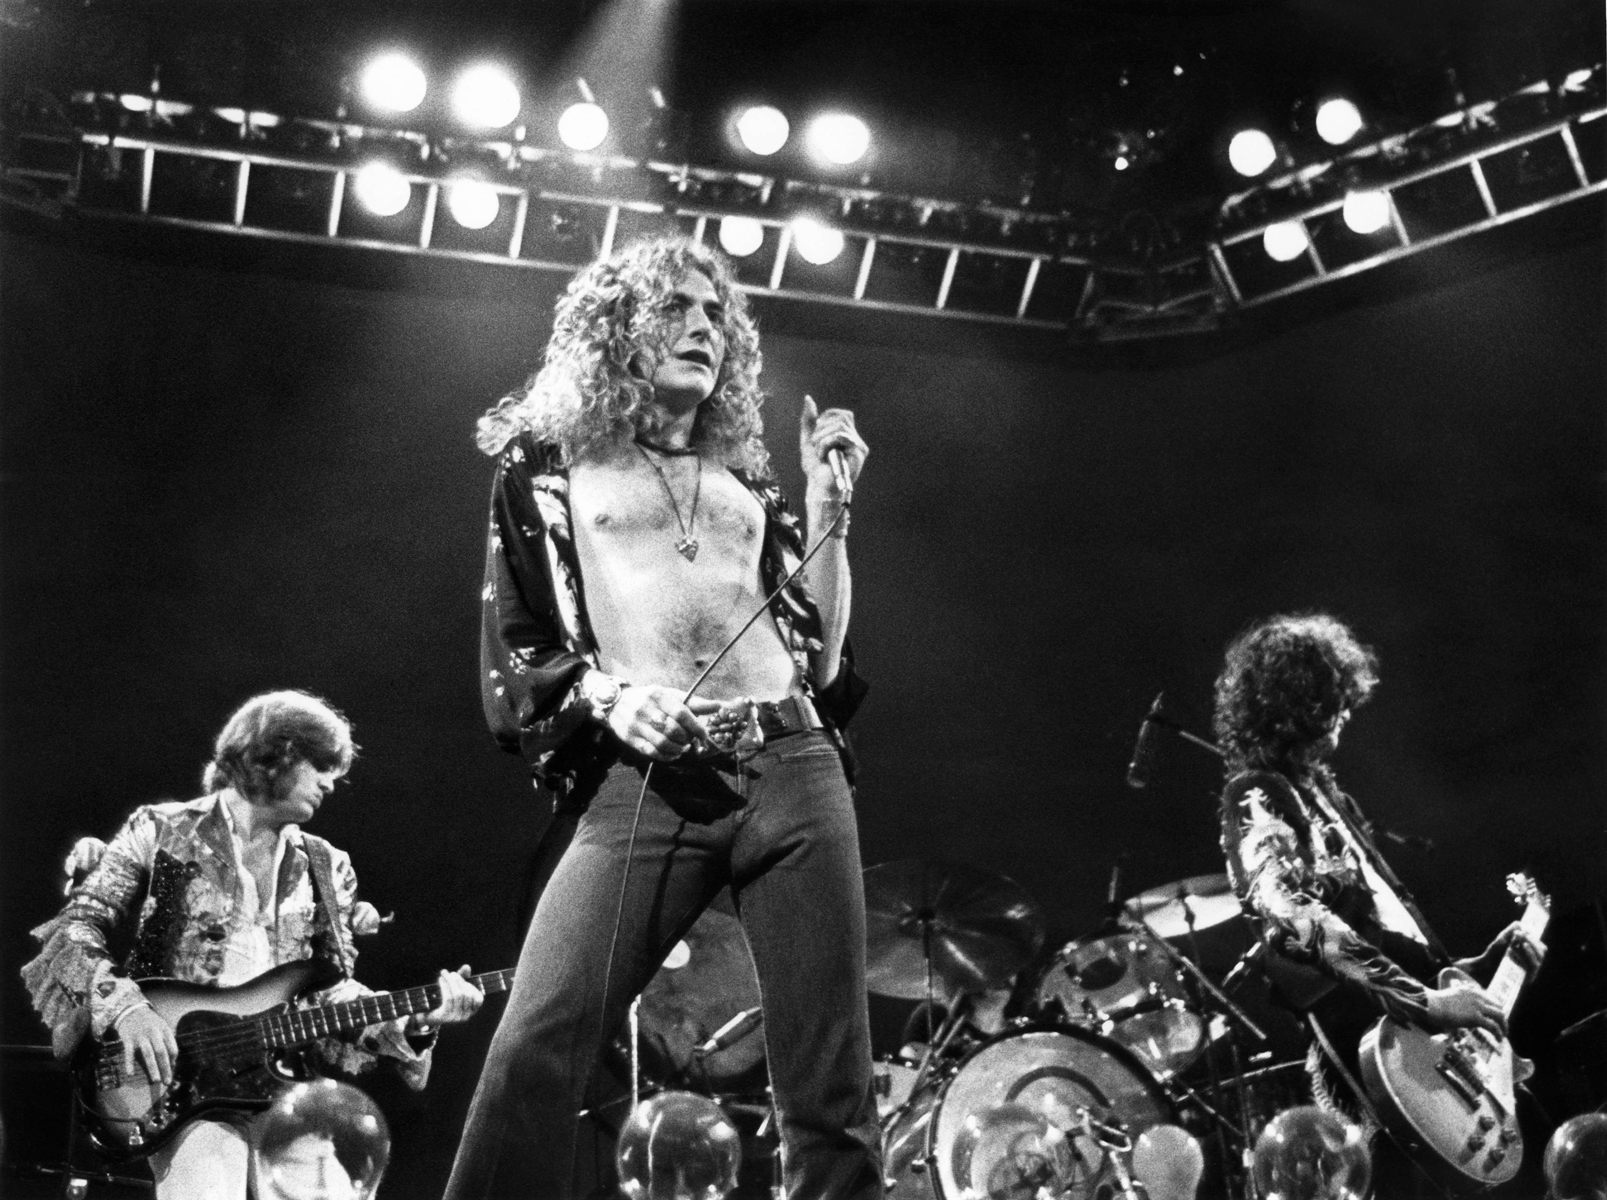 L-R: John Paul Jones, Robert Plant, Jimmy Page performing live onstage at Earls Court in London on May 24th, 1975.